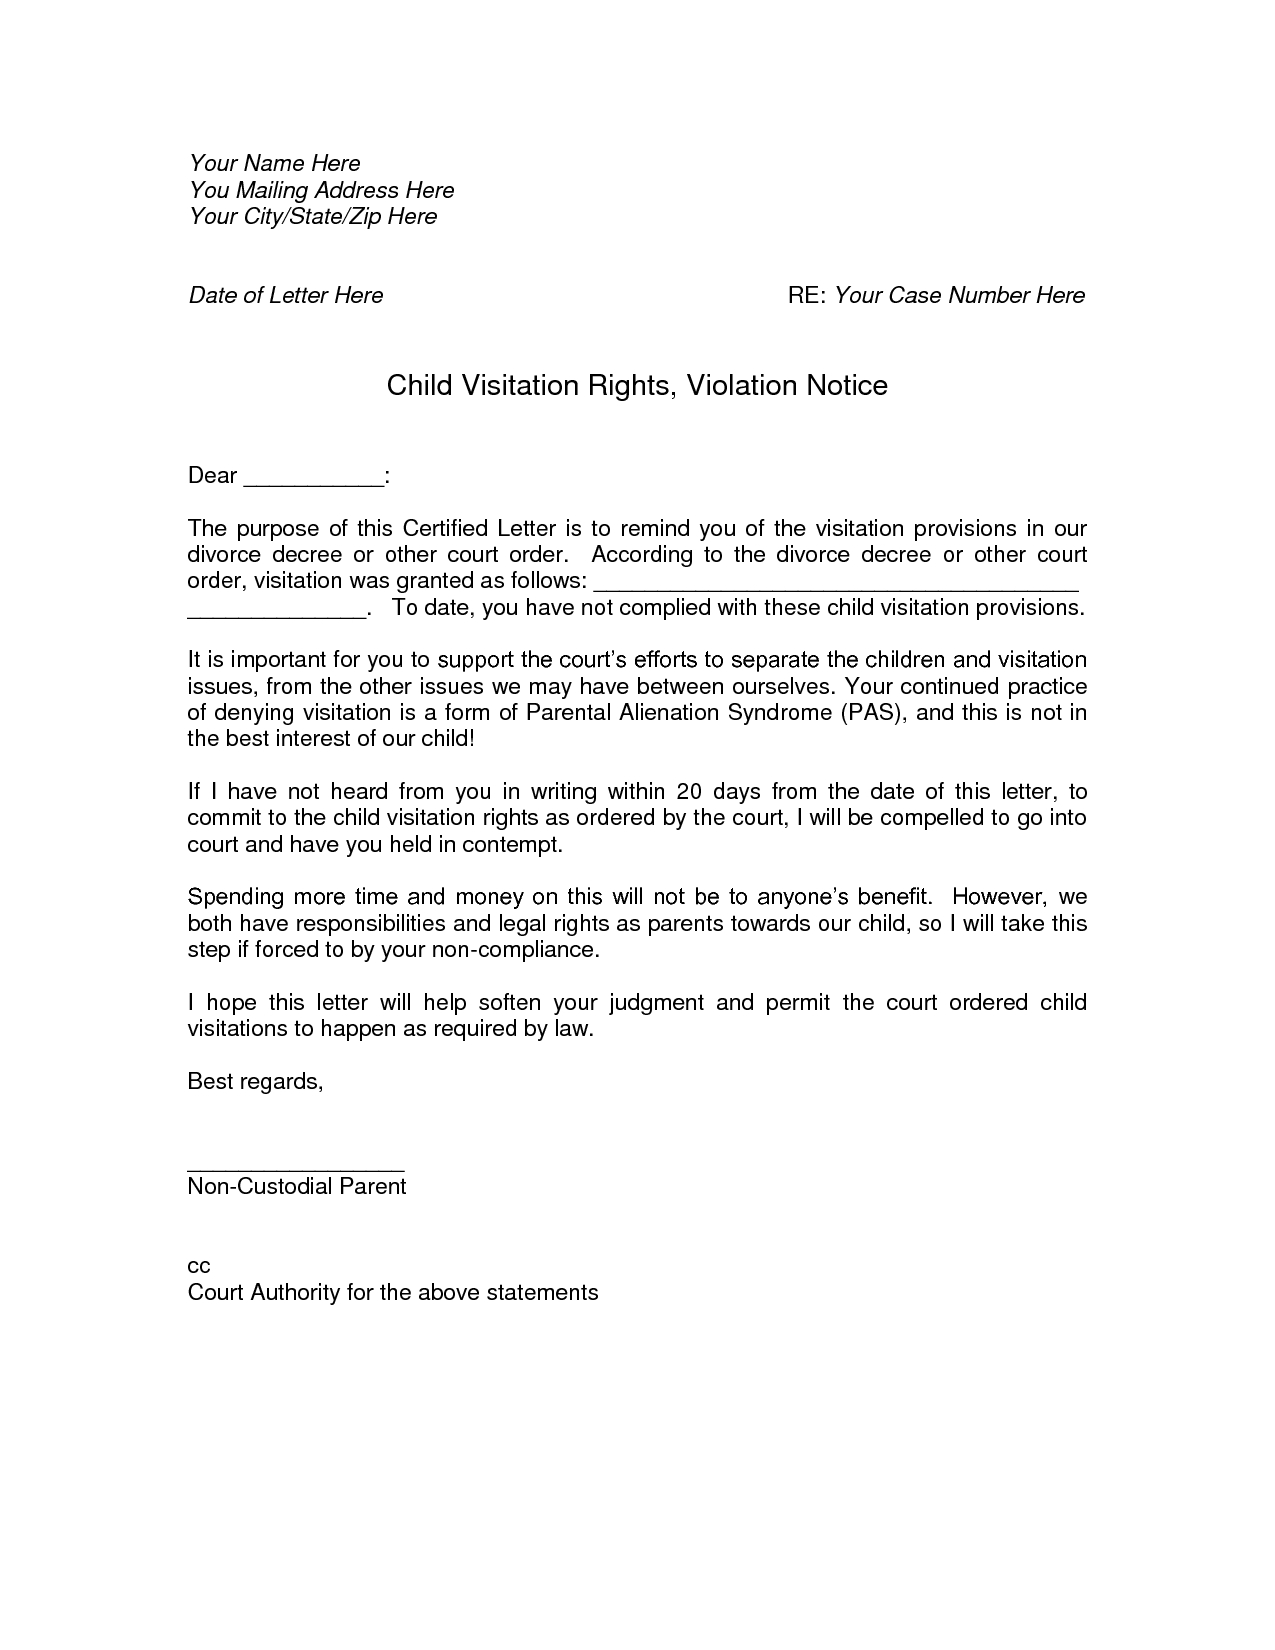 Child Custody Letter Template - How to Write A Visitation Letter Letter format formal Sample